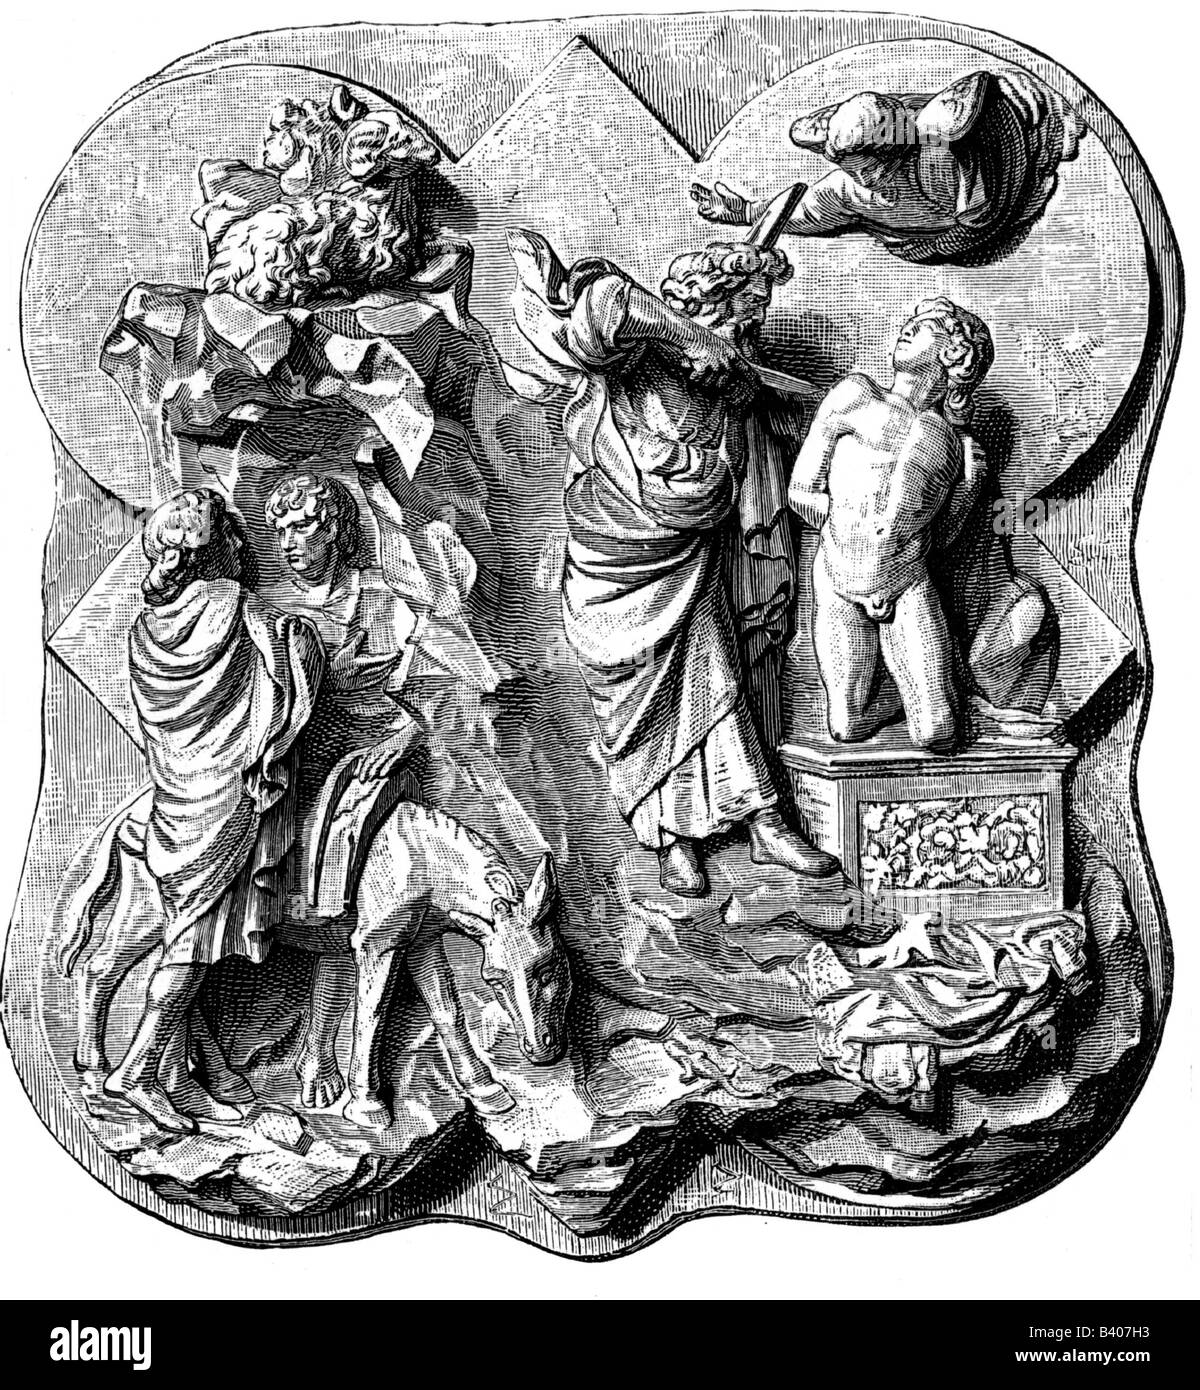 Abraham, son of Terah, forefather of Hebrews, second sacrifice of Abraham - Isaac - bronze relief by Filippo Brunelleschi, - Stock Image